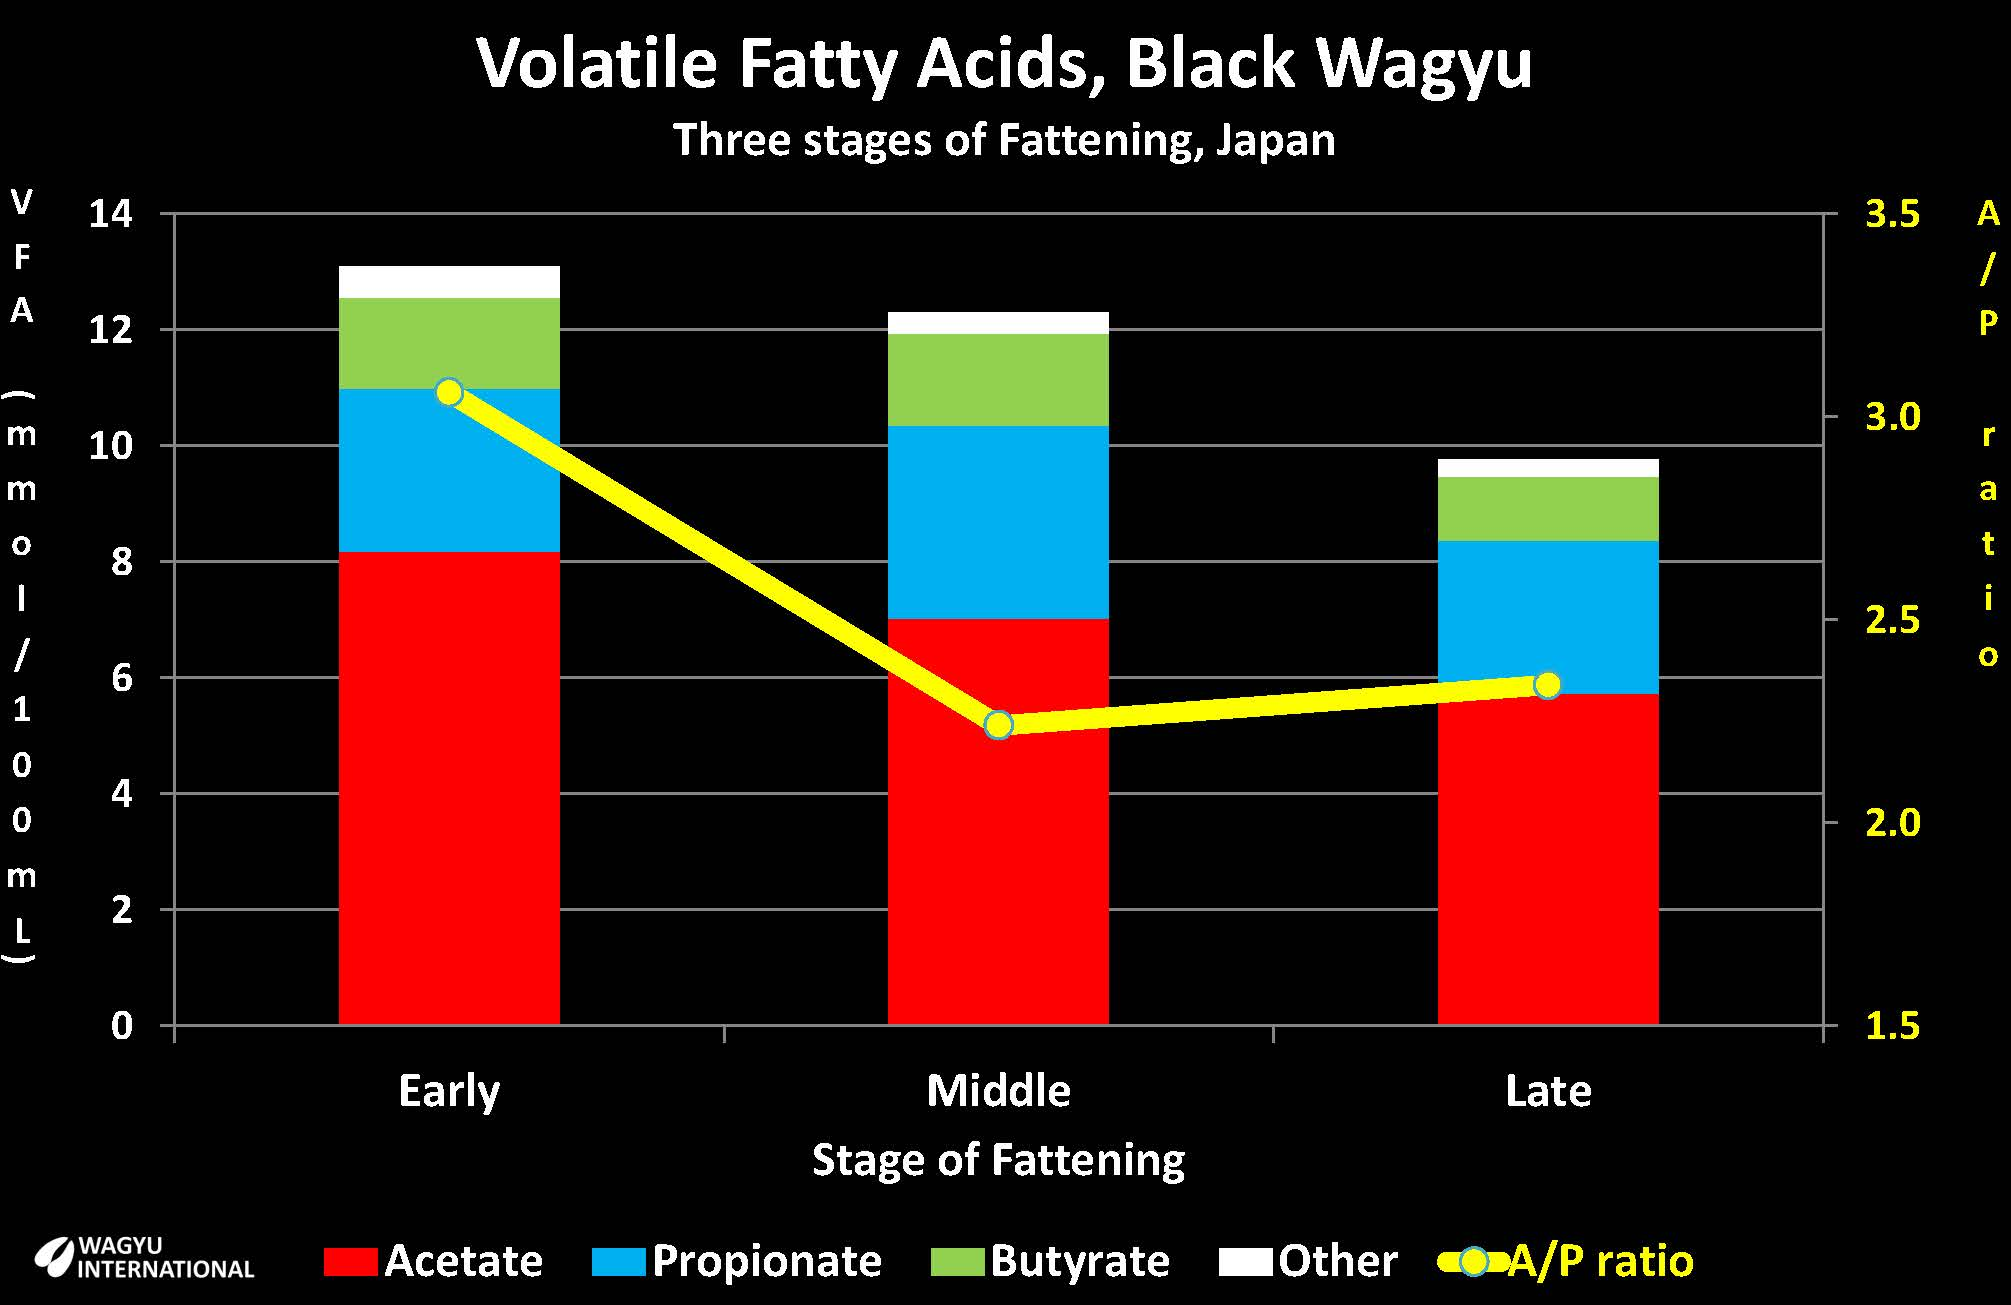 Chart with volatile fatty acid content from Wagyu in Japan at different stages of fattening presented by Wagyu International